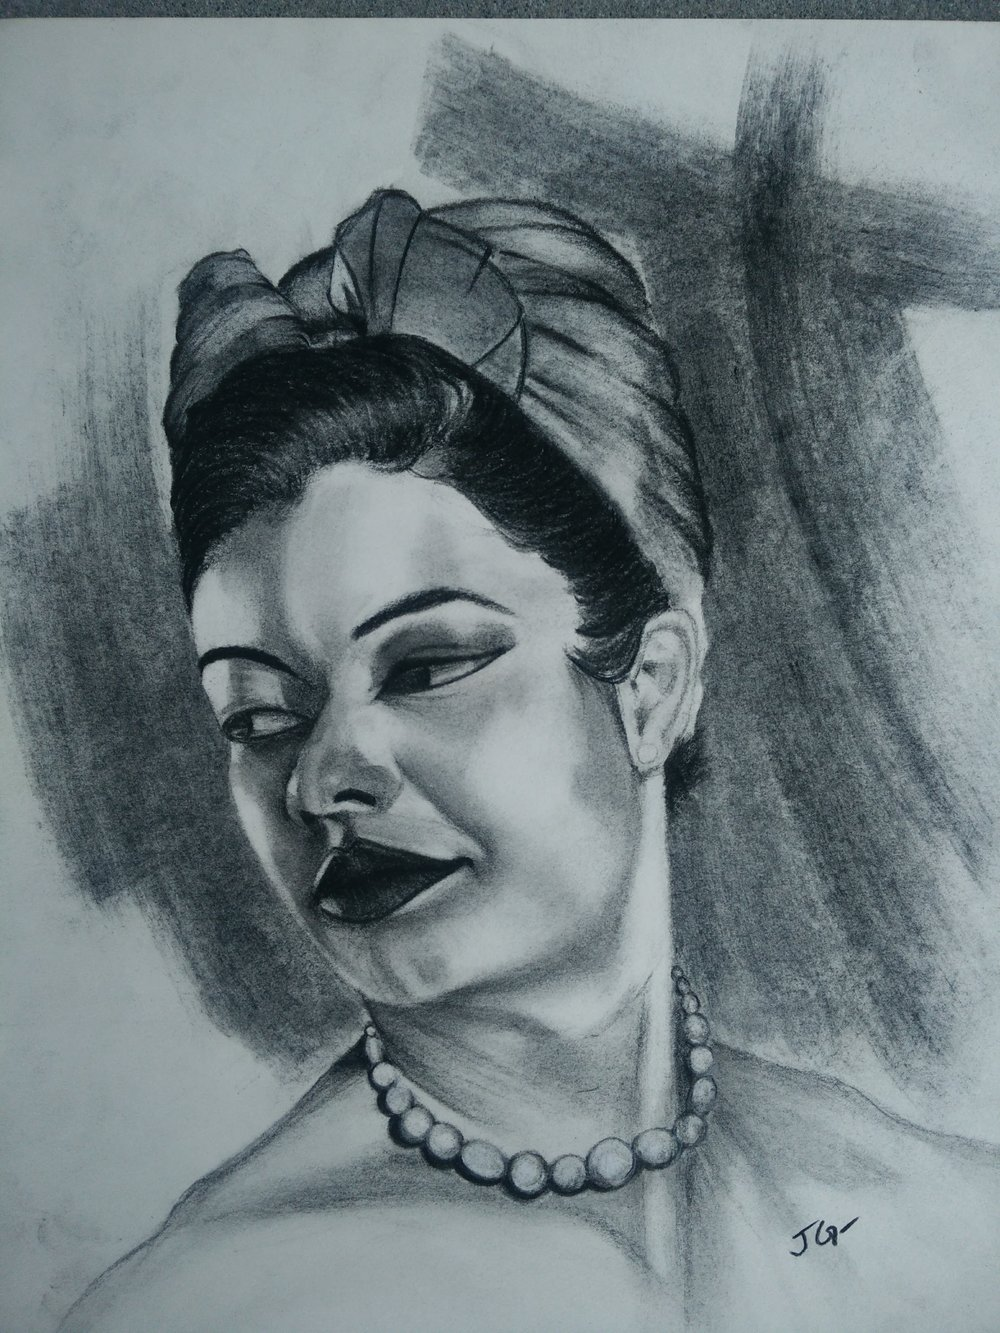 Portrait Drawing in Charcoal:  - Mondays, 6:00 pm to 7:00 pmLet's learn how to draw portrait in charcoal. Step by step instruction will be given for creating structure and planes of the head, rendering the five values of light and shadow, designing edges and creating likeness and composition. Instructor will show numerous charcoal drawing techniques, materials and concepts. Join us today!Level: BeginnerSupplies: All supplies included.